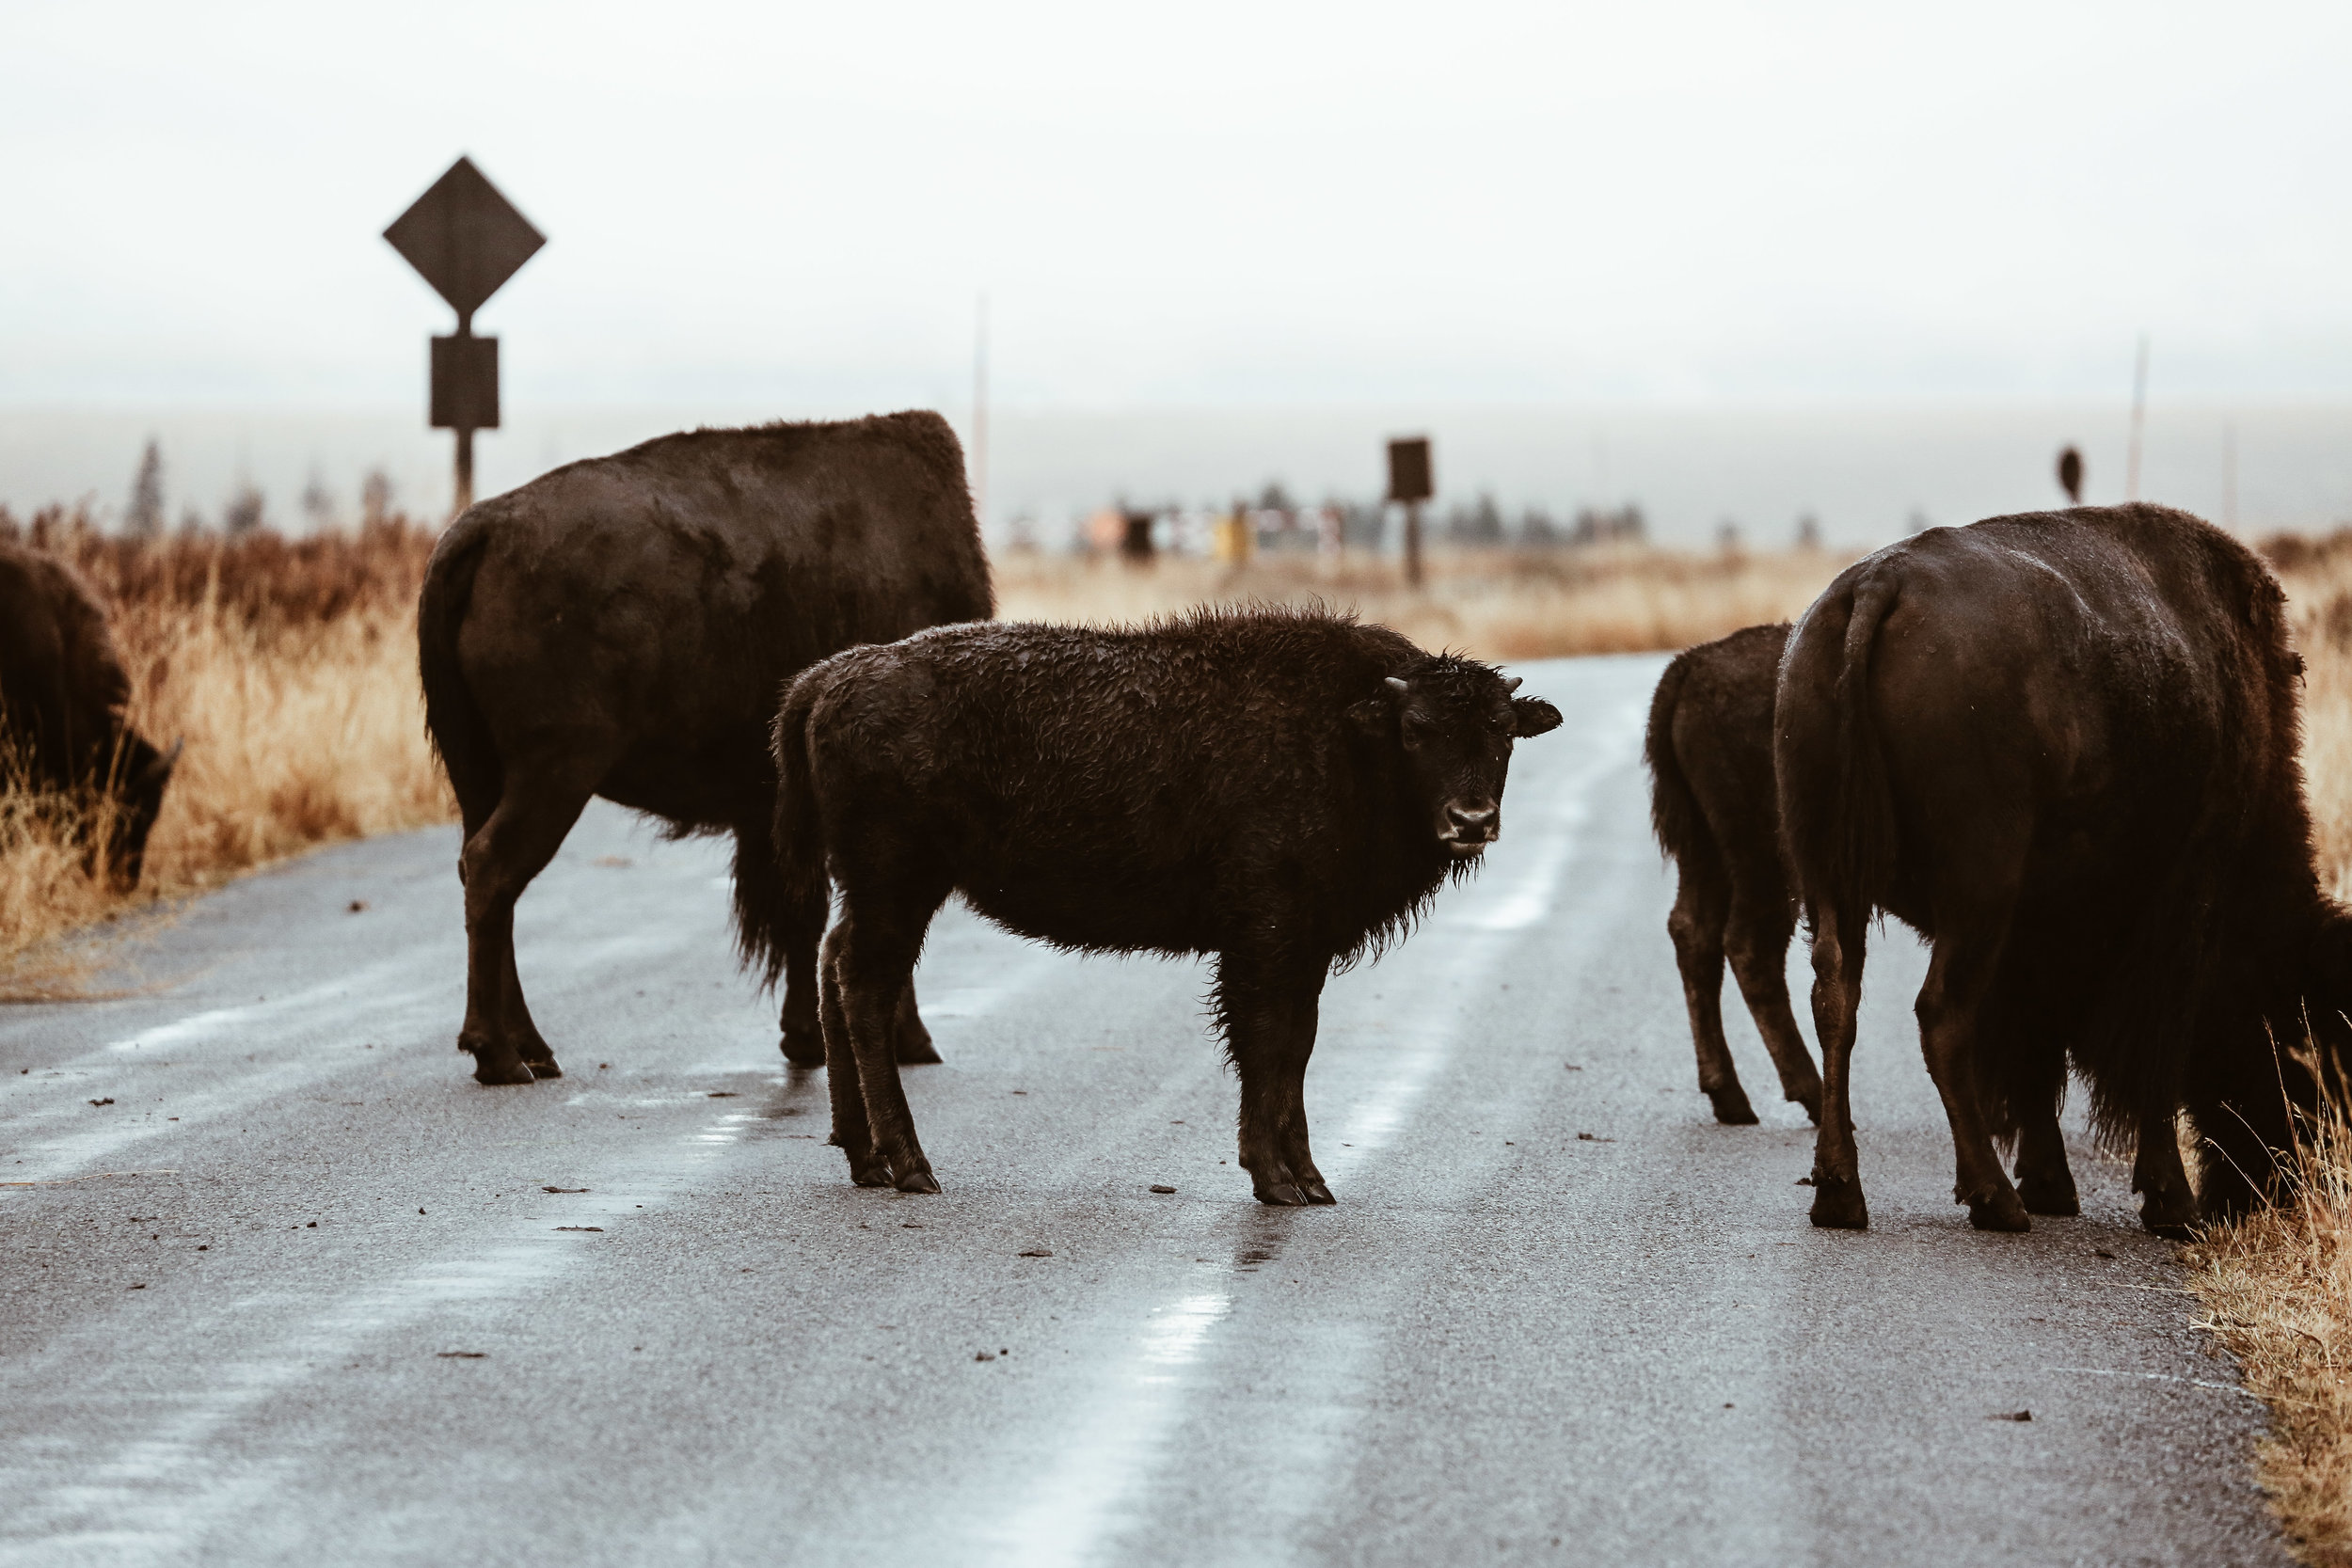 Bison spotted on our tour with Jackson Hole Wildlife Safaris